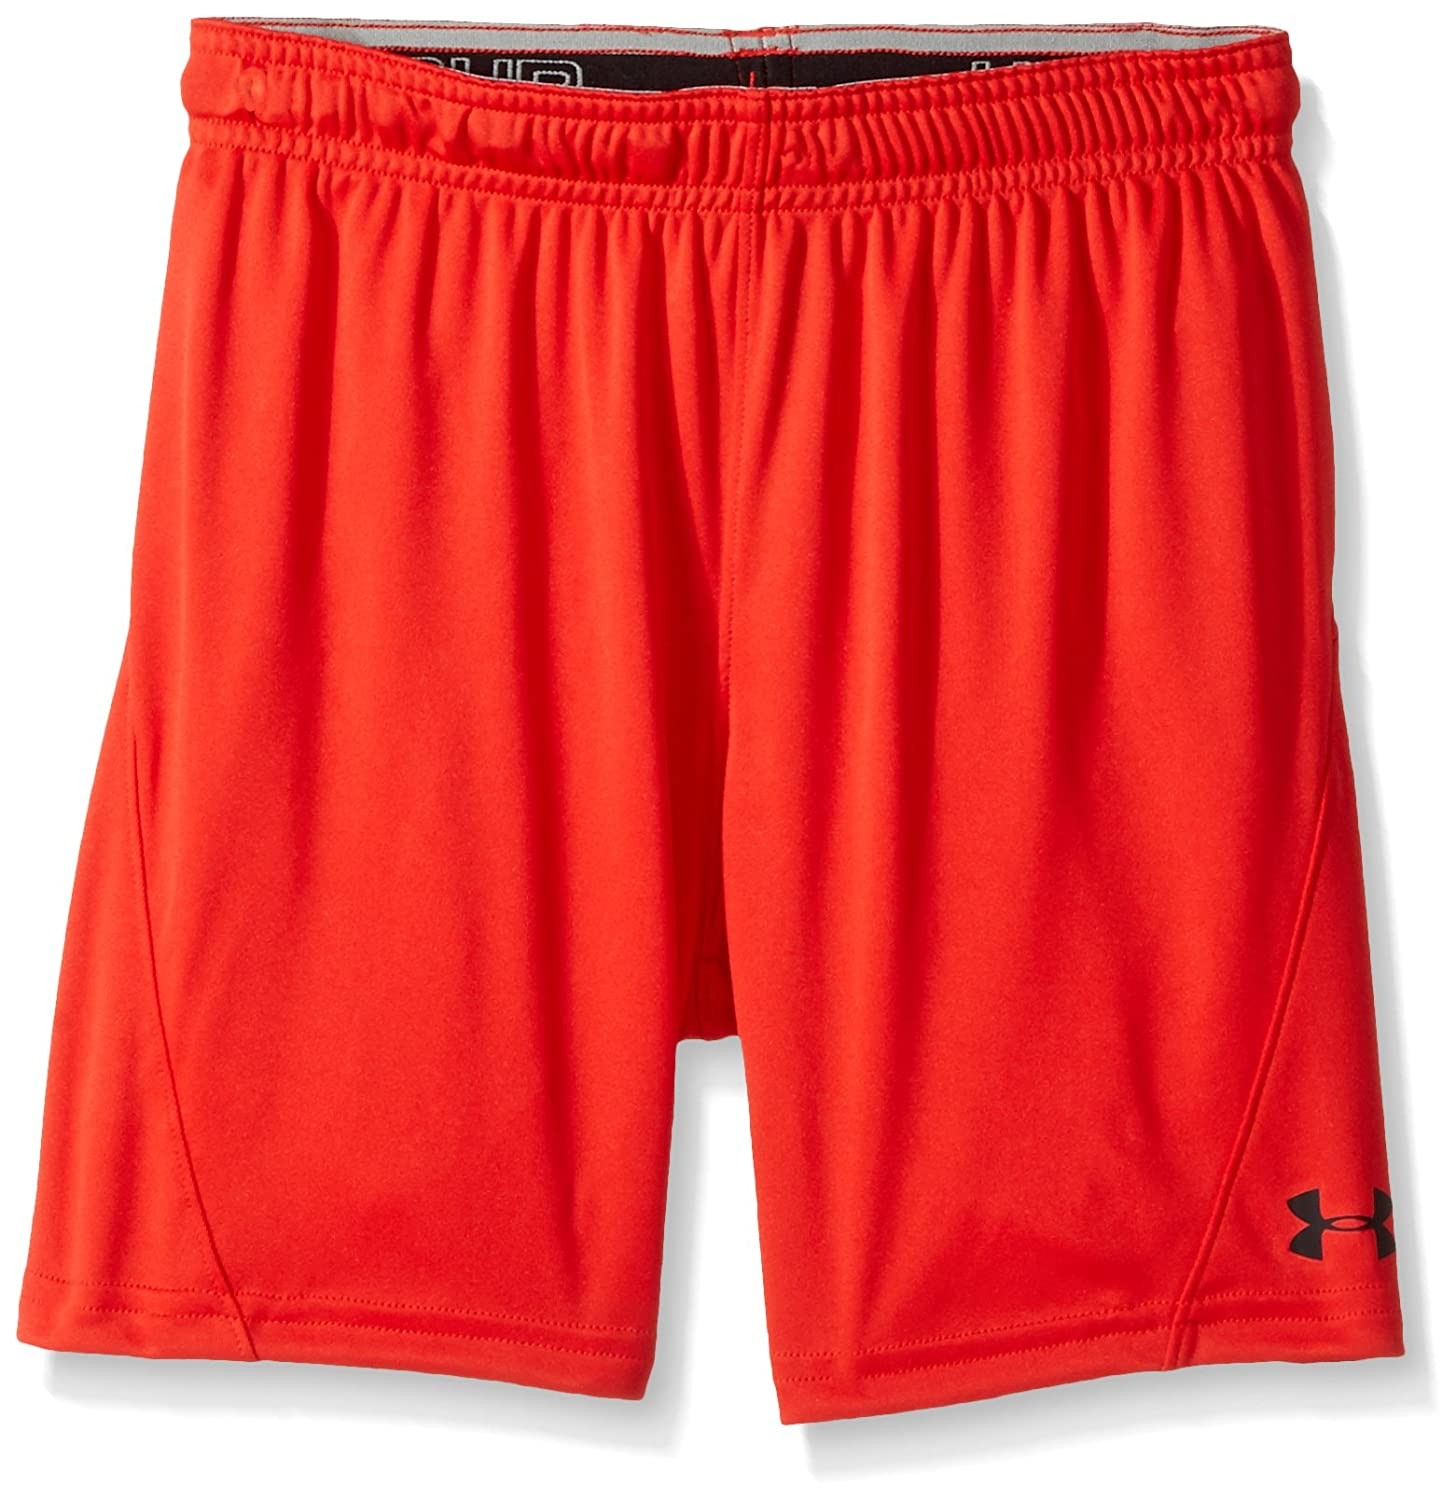 Under Armour Kids 'チャレンジャーニットショーツ B01FWRK7U8 Youth Small|Risk Red (600) Risk Red (600) Youth Small